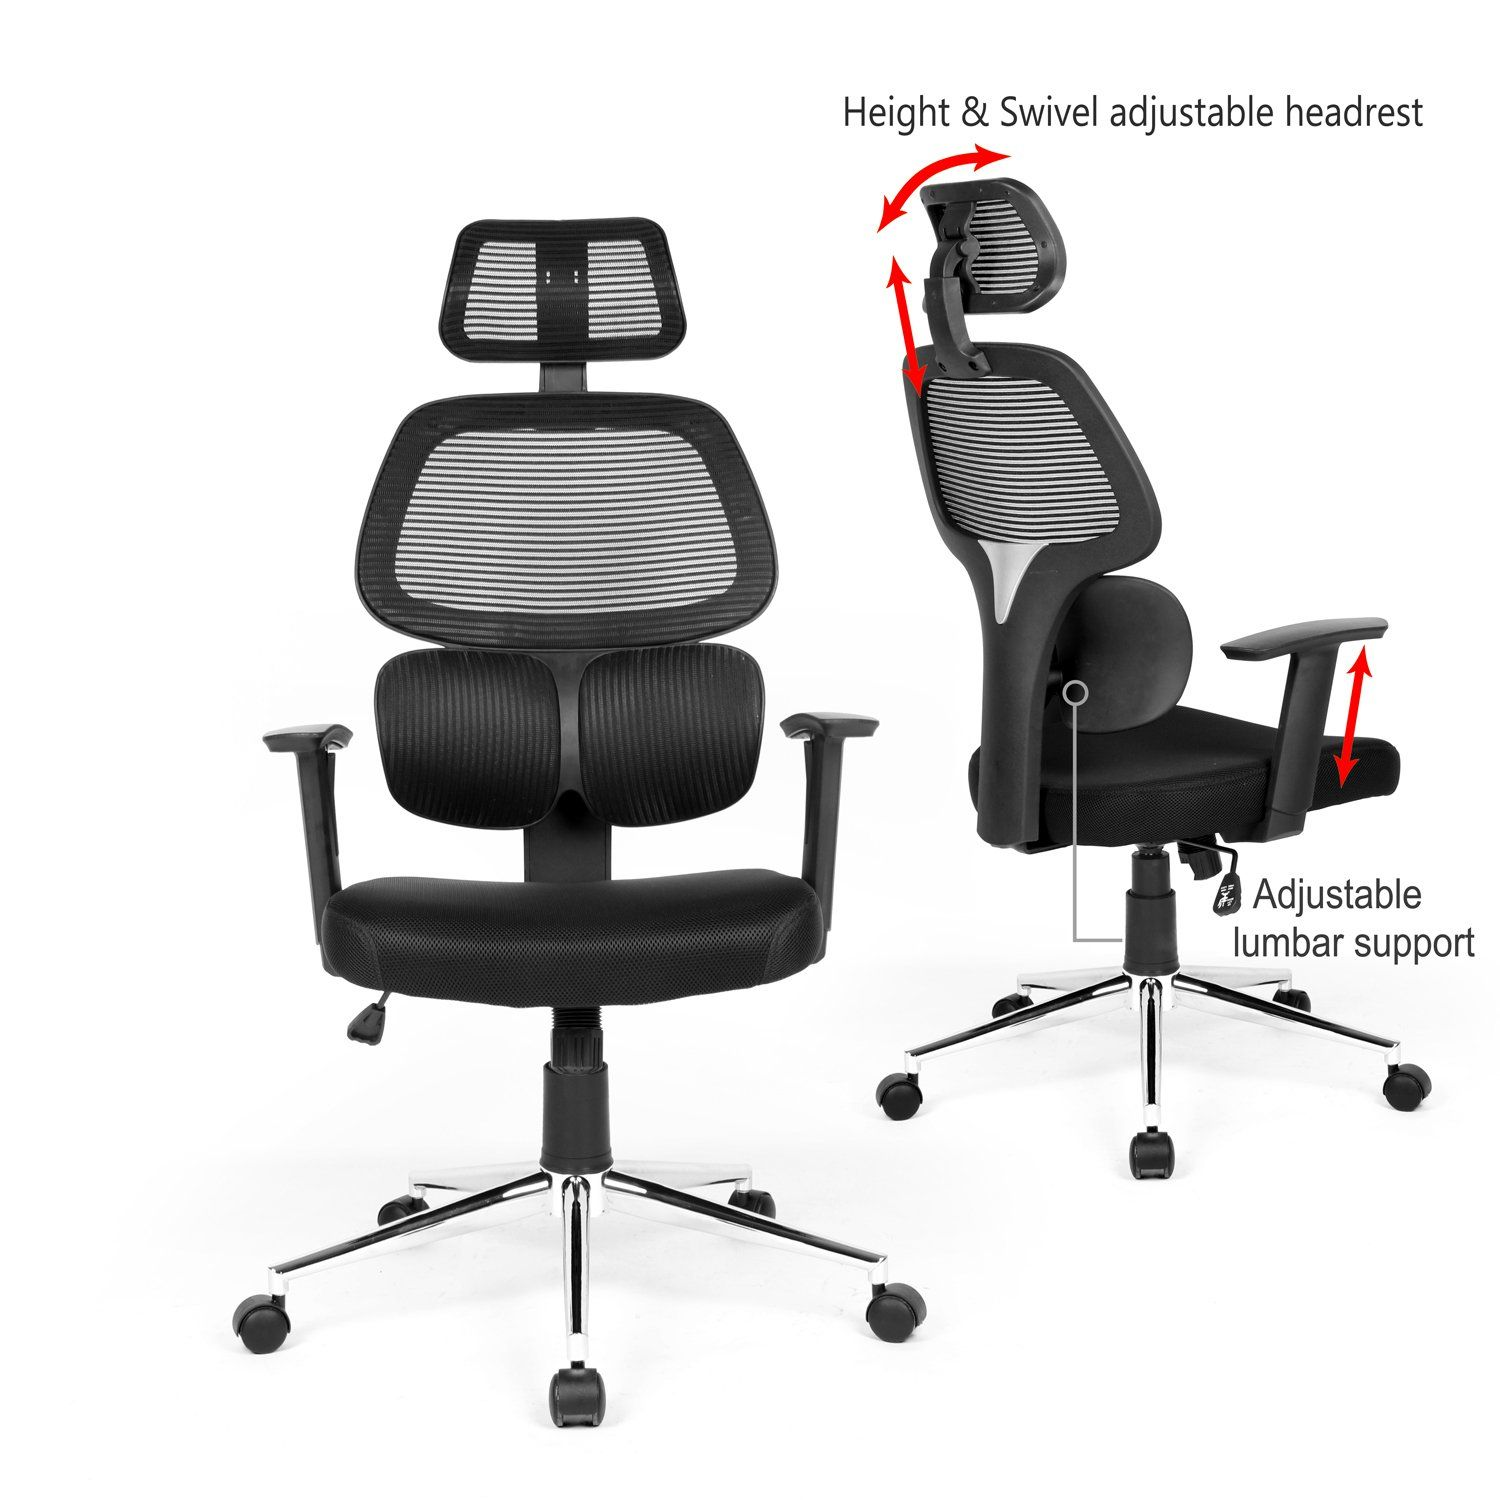 Ergonomic Mesh Office Chair High Back Swiver Computer Desk Task Chairs With Adjustable Lumbar Support Backre Office Chair Mesh Office Chair Black Office Chair